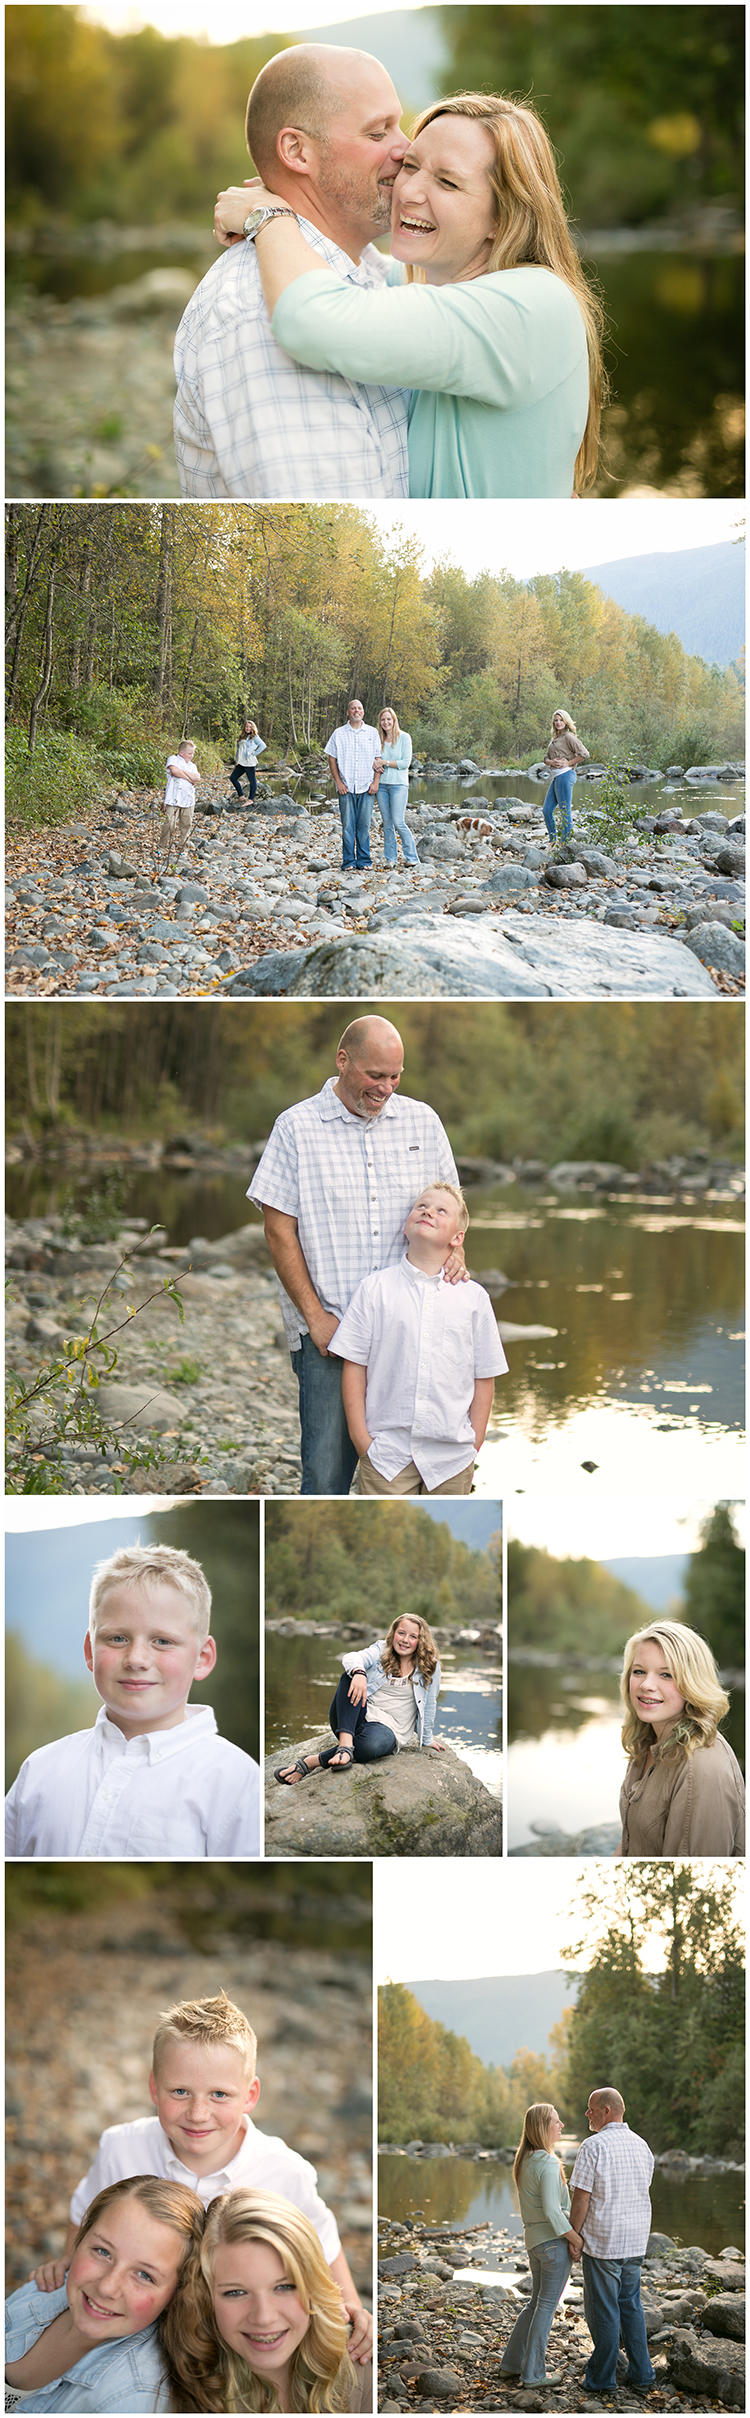 Snoqualmie Valley Photographer {Rusted Van Photography}